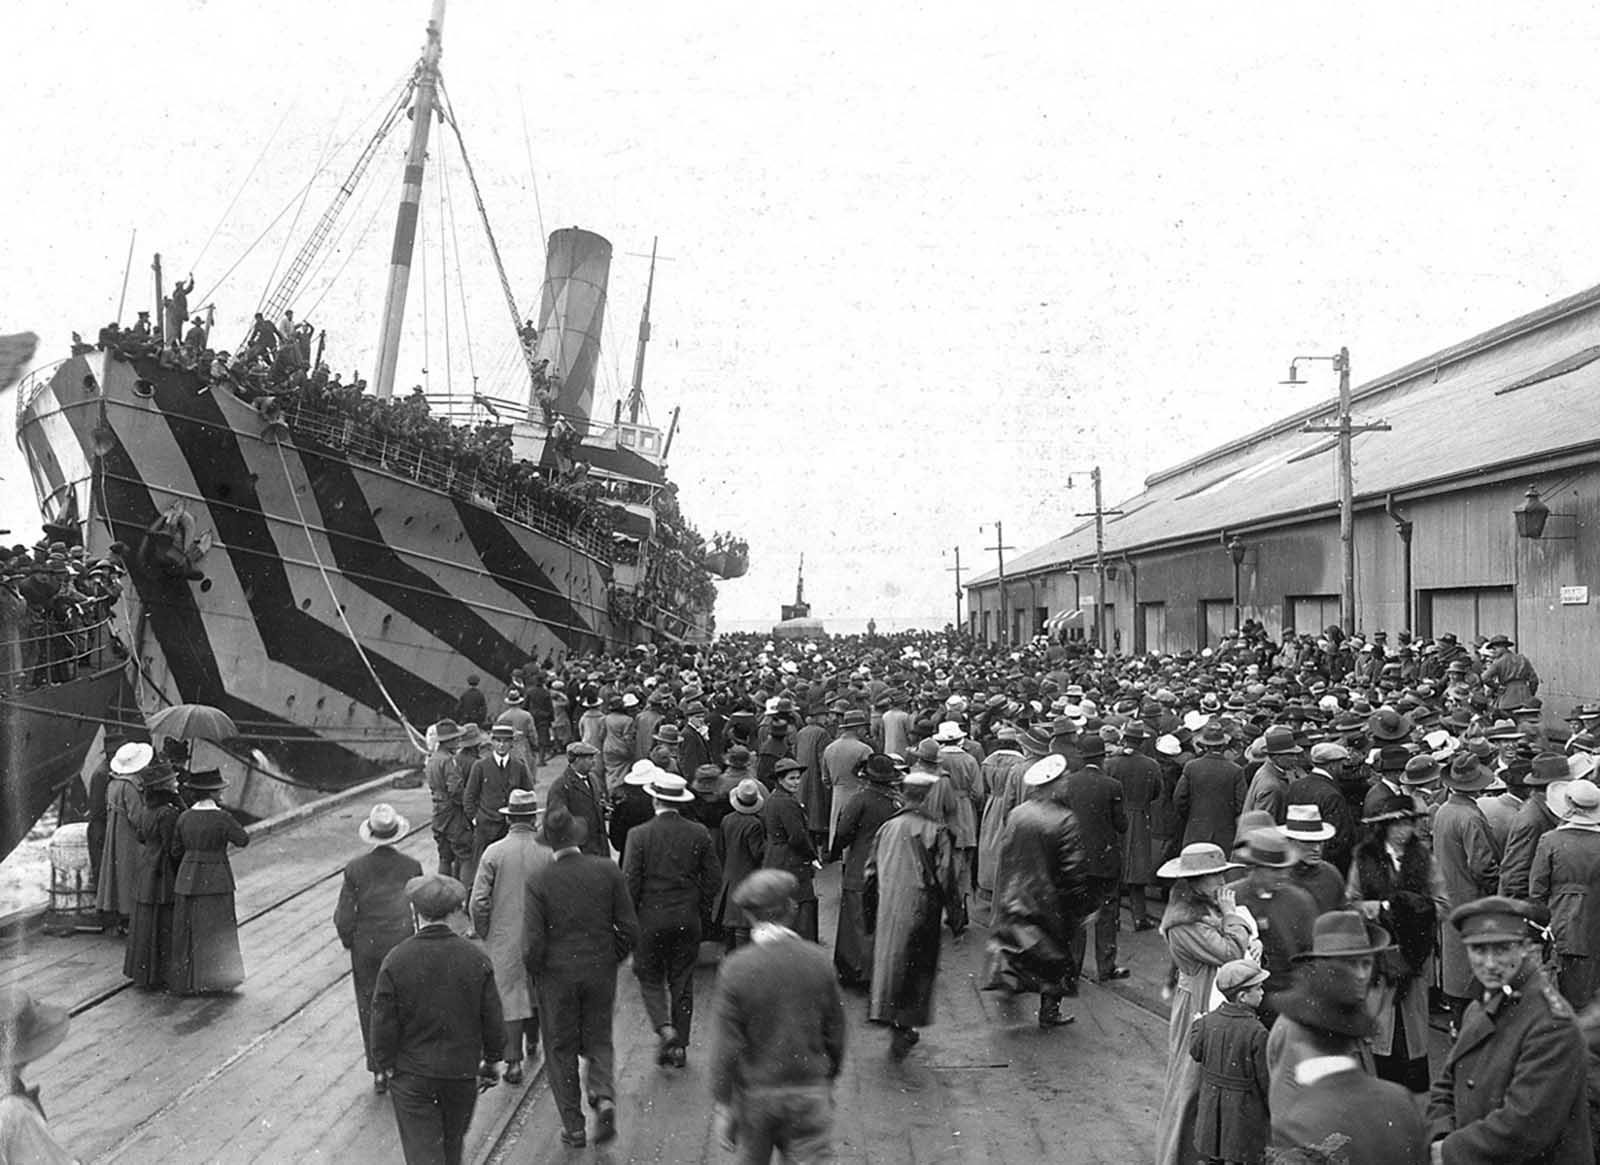 Crowds on a wharf at Outer Harbour, South Australia, welcoming camouflaged troop ships bringing men home from service overseas, circa 1918.